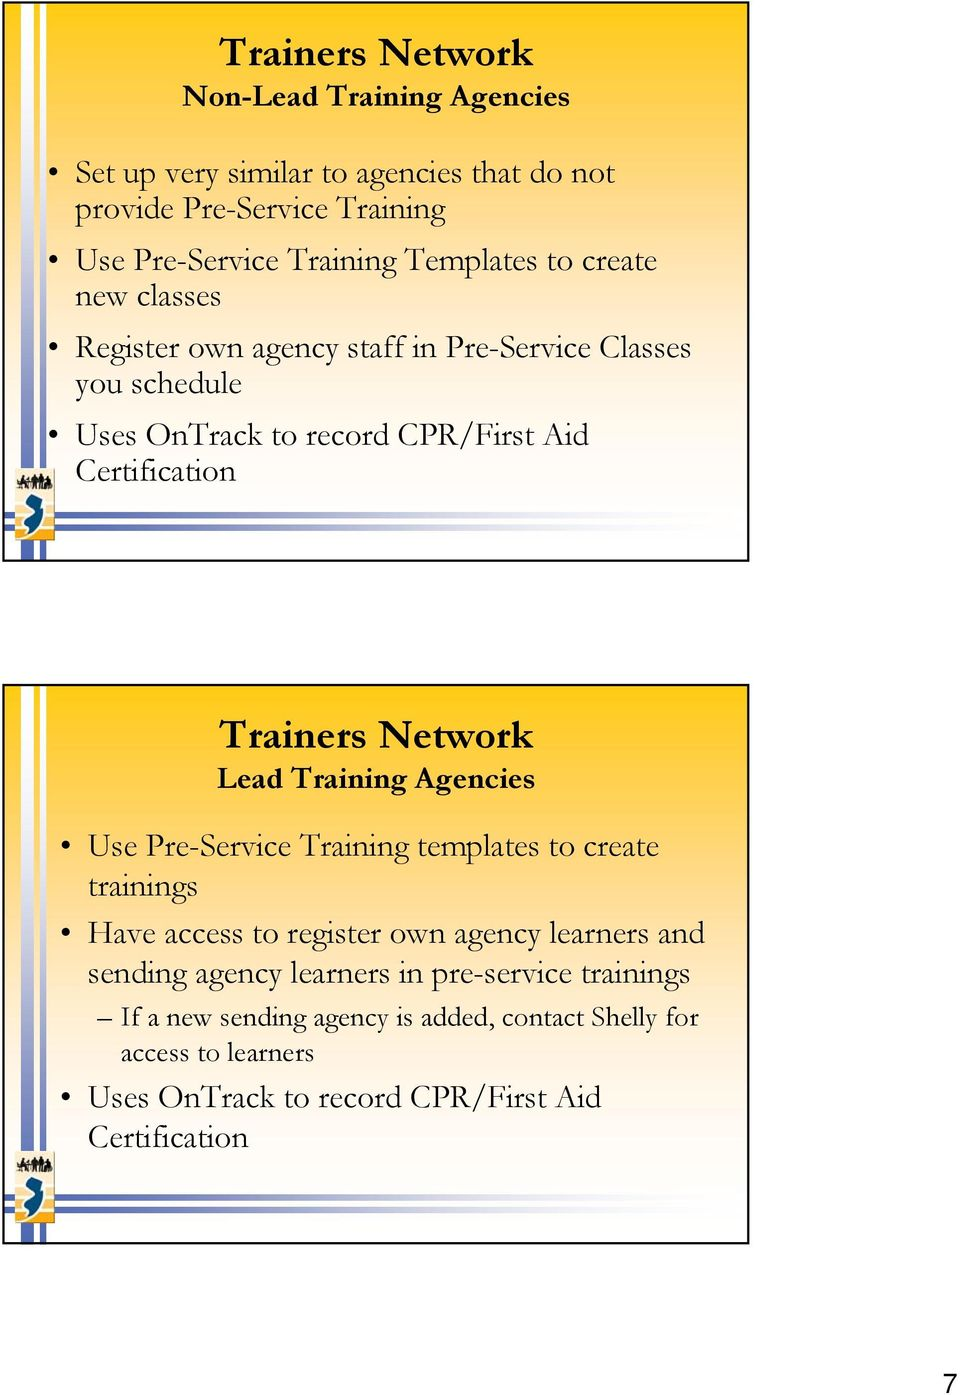 Trainers Network Lead Training Agencies Use Pre-Service Training templates to create trainings Have access to register own agency learners and sending